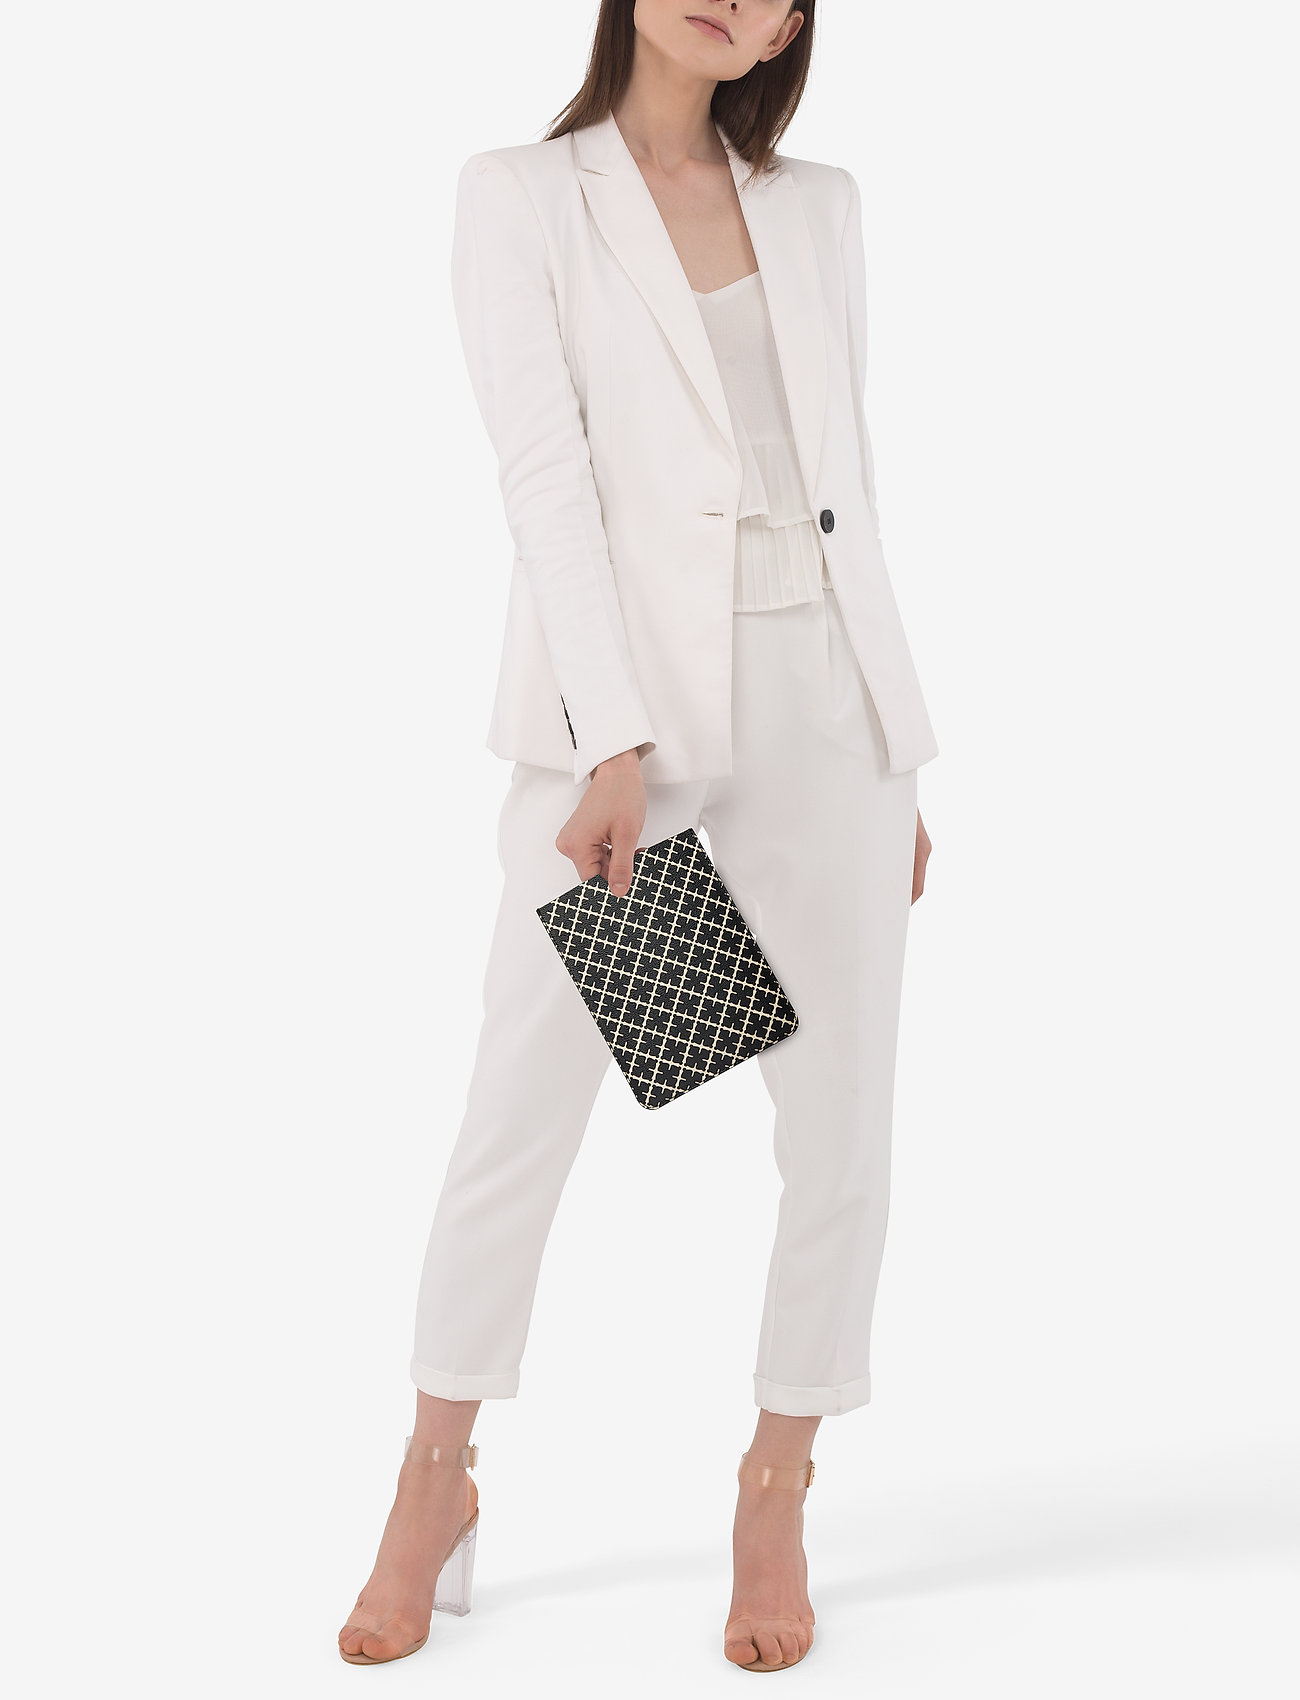 By Malene Birger PUR7002S91